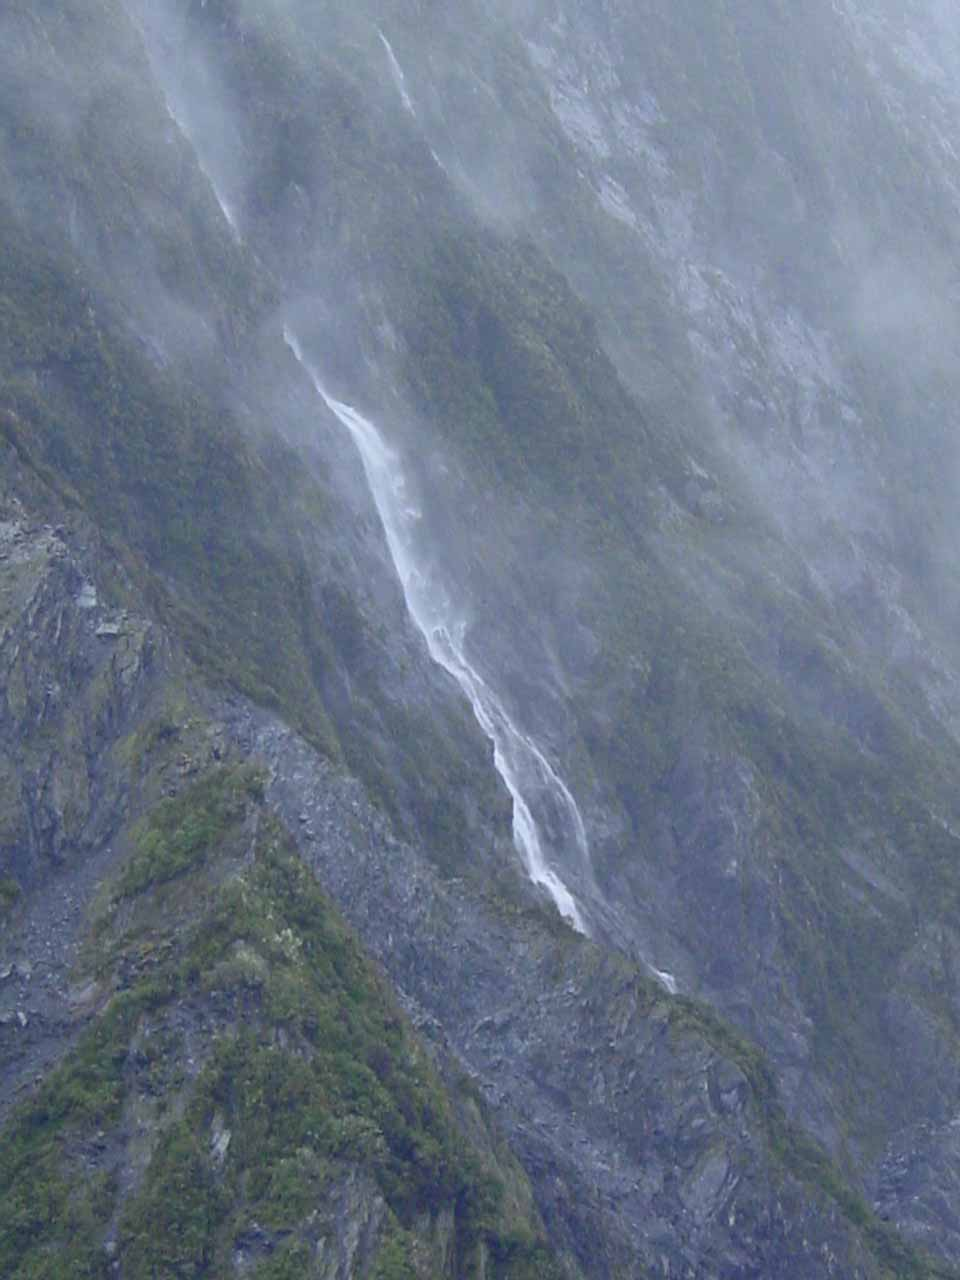 Closeup look at what I think is Unser Fritz Falls tumbling into the Franz Josef Glacier